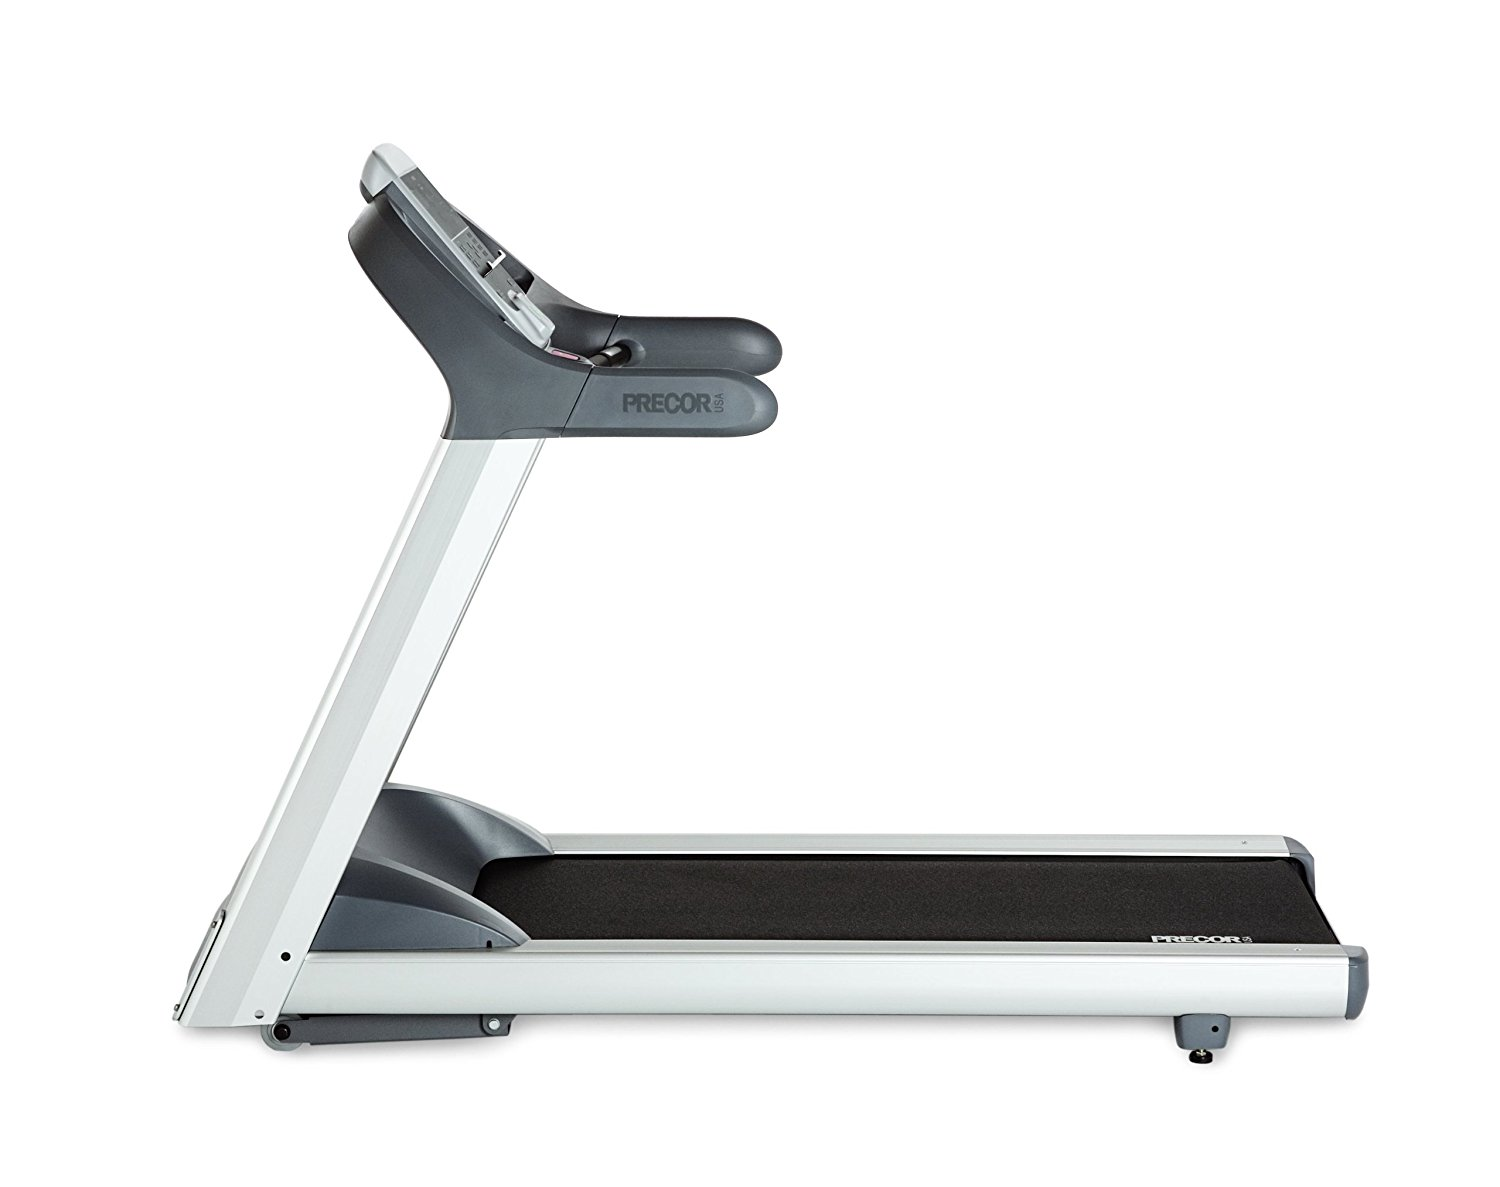 Precor TRM 932i Commercial Treadmill